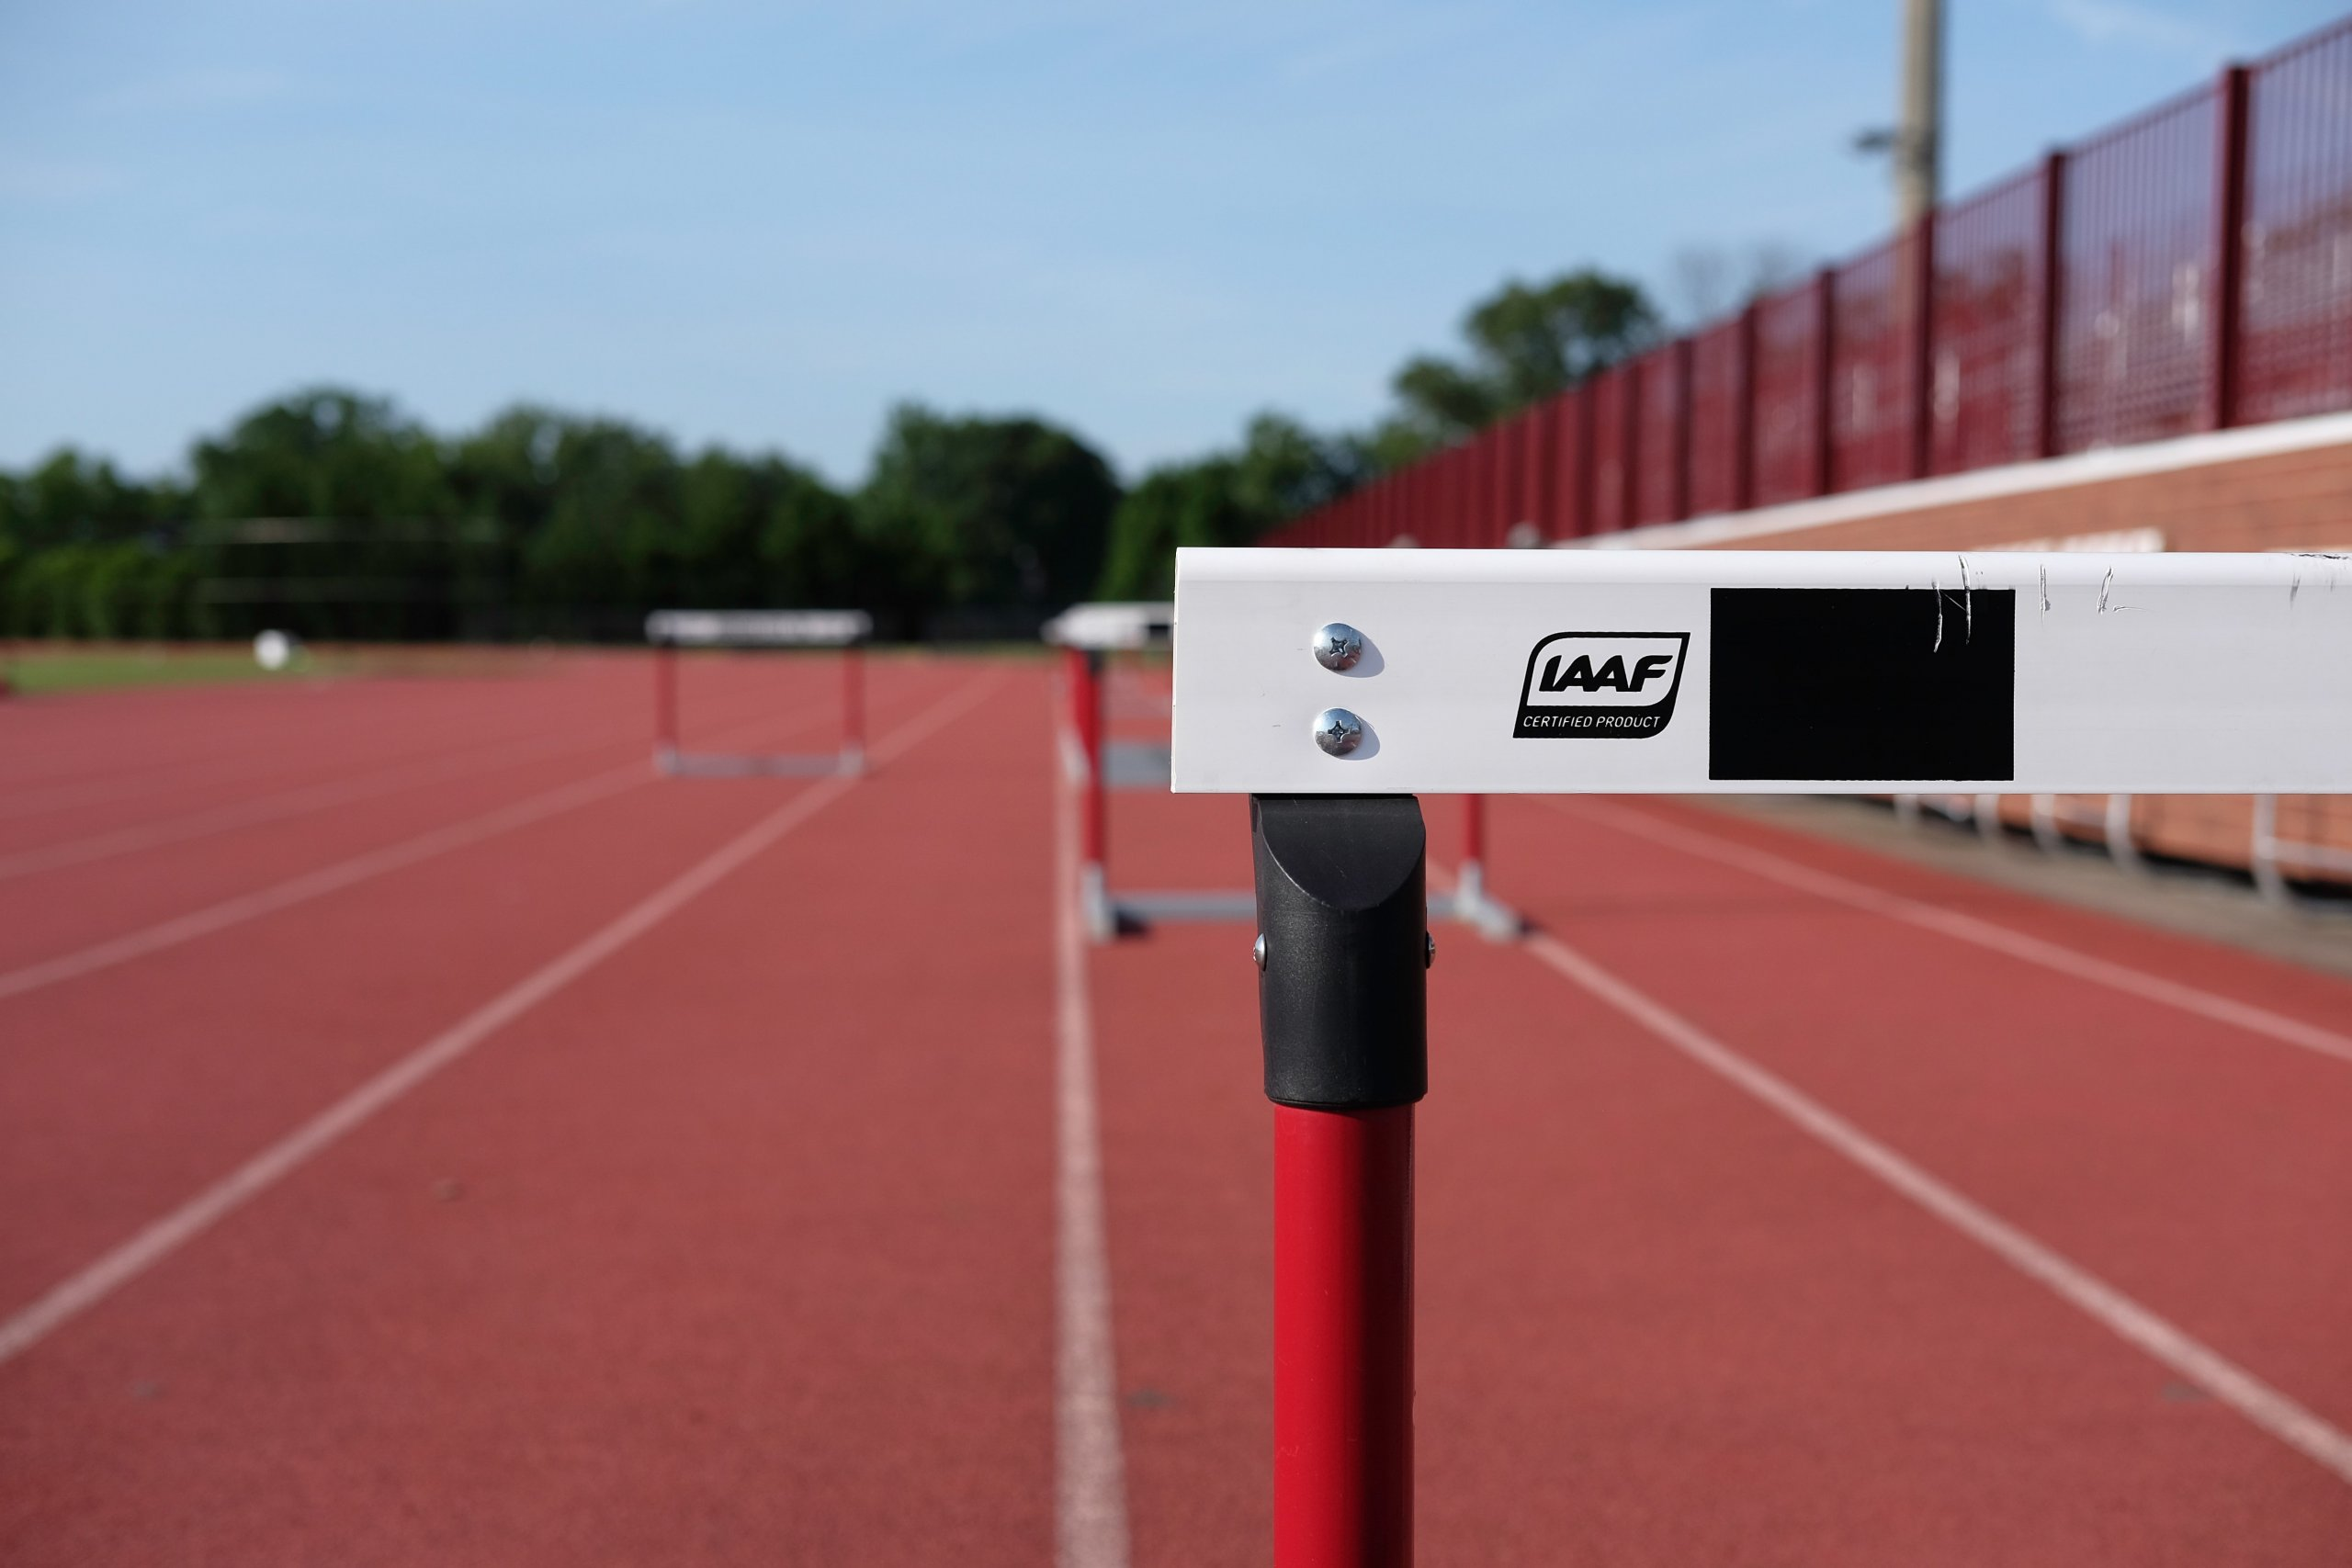 The road to coaching   Part 1: The first hurdle